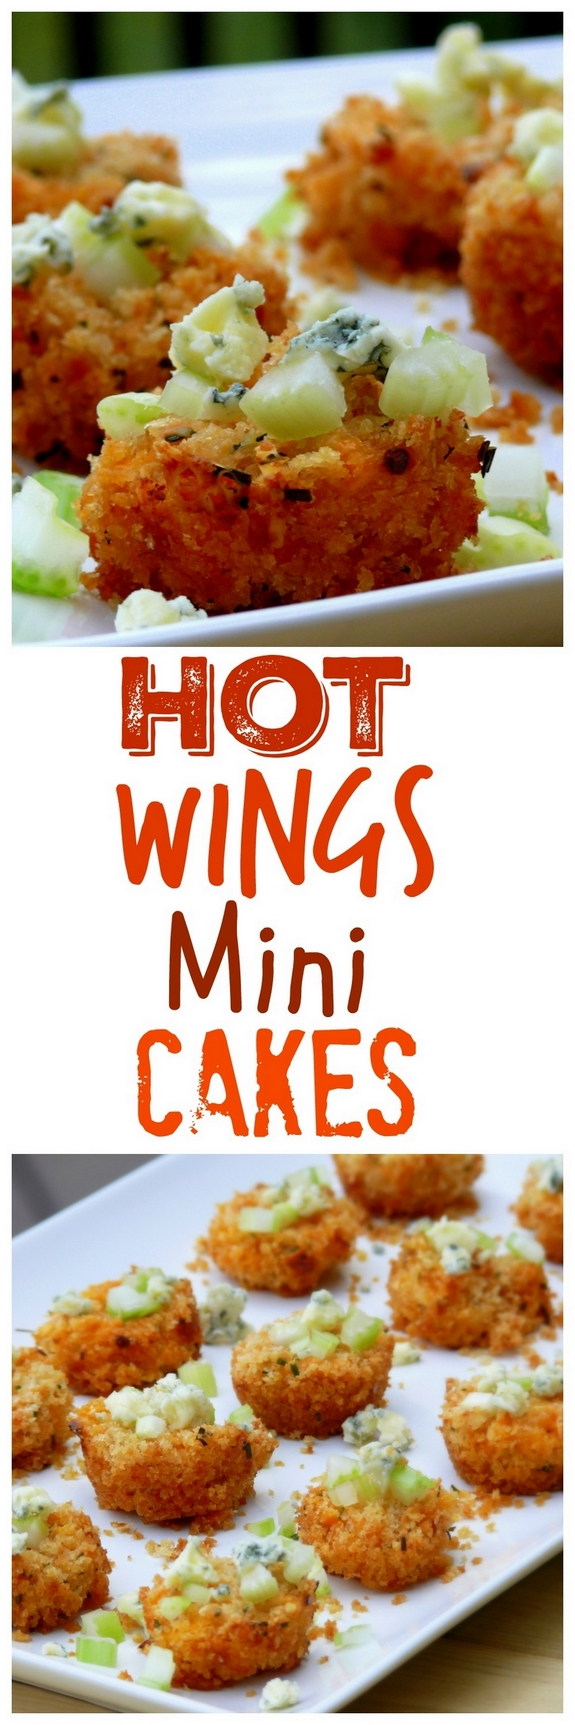 Hot Wing Mini Cakes